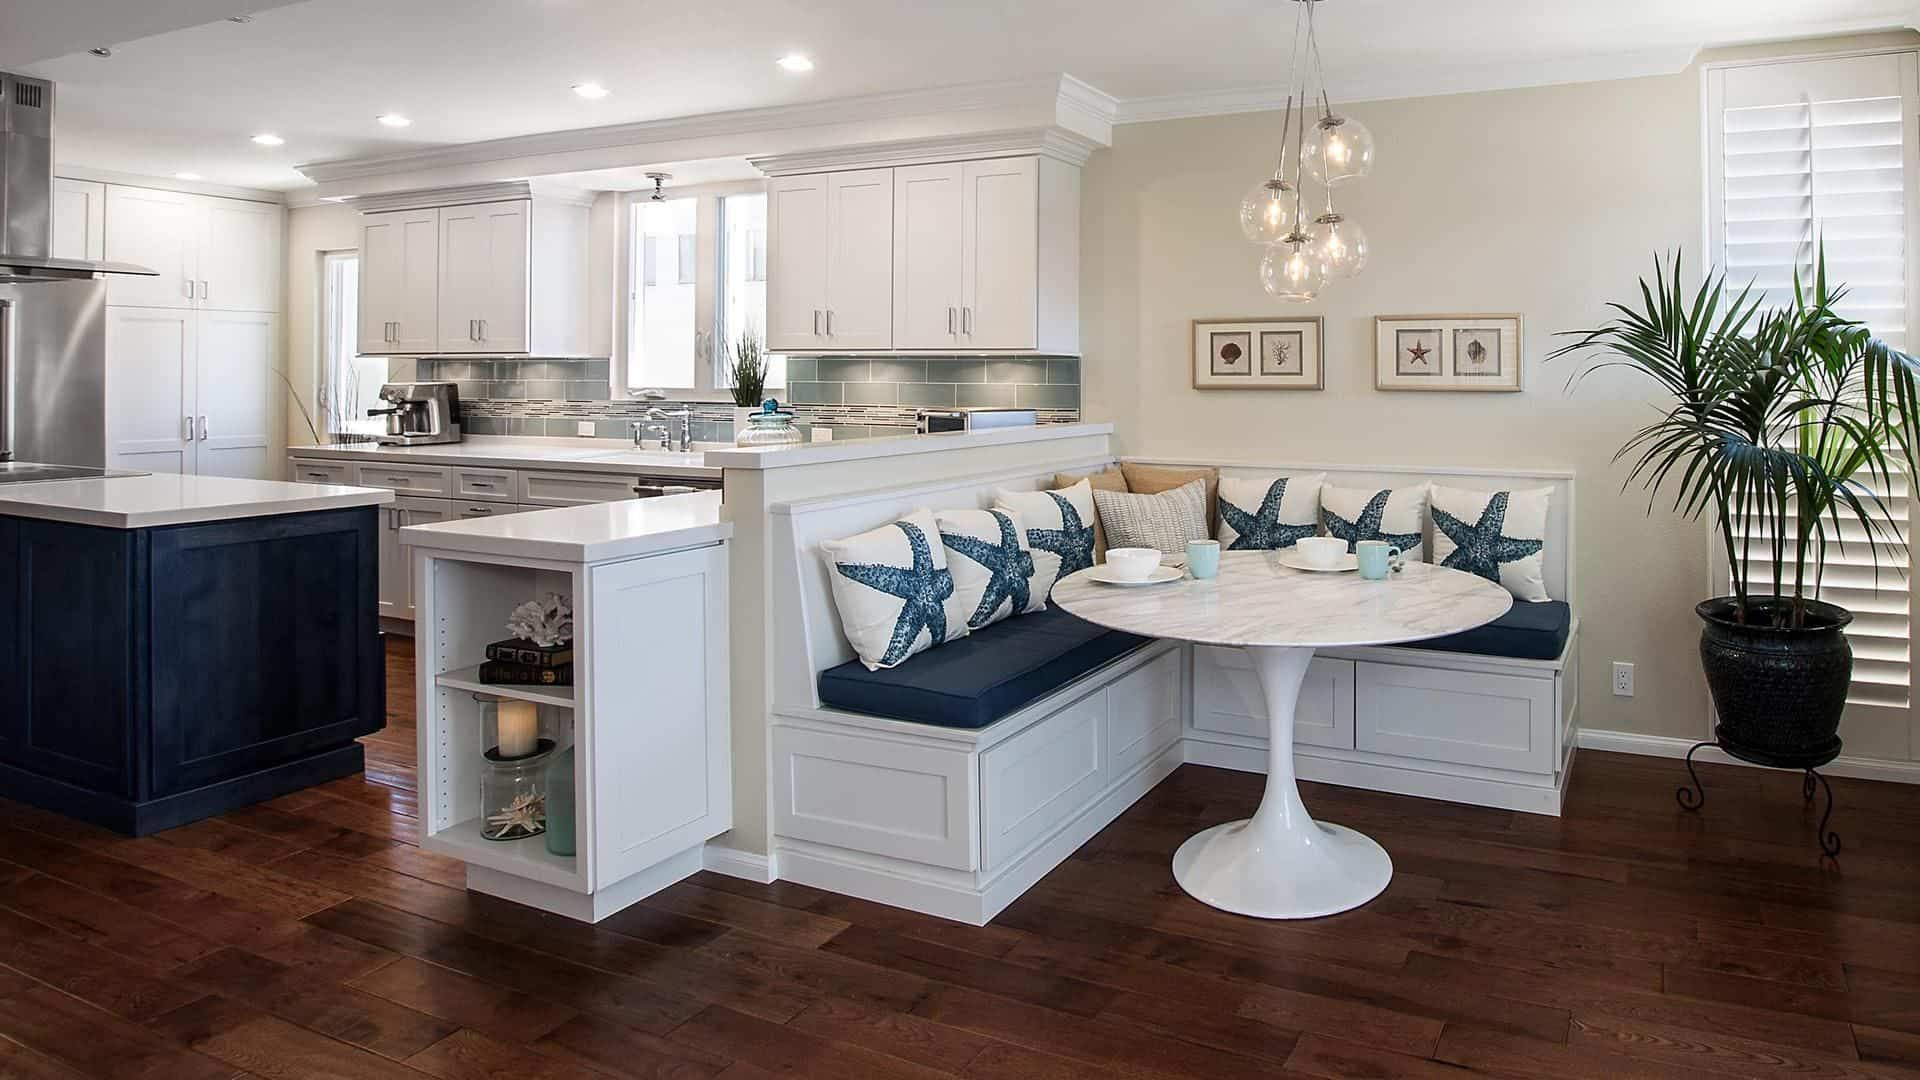 Ideas Of Banquette Seating Banquette Seating In Kitchen Kitchen Layout Kitchen Banquette